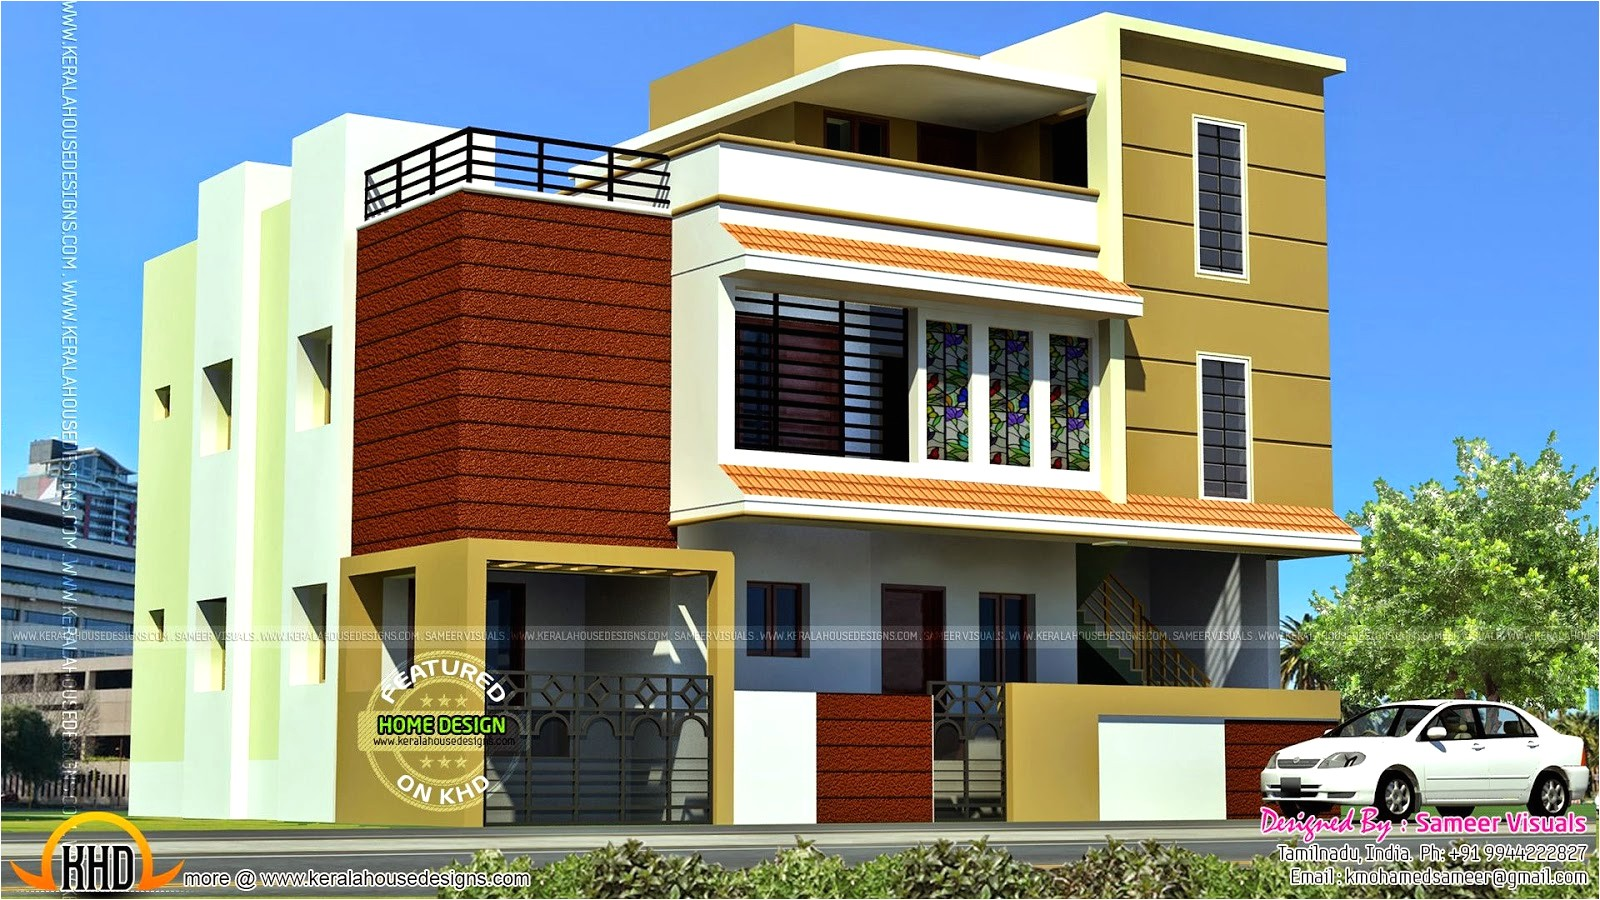 Tamilnadu Home Plans with Photos Tamil Nadu Home Plans Fresh 19 Luxury 500 Sq Ft House